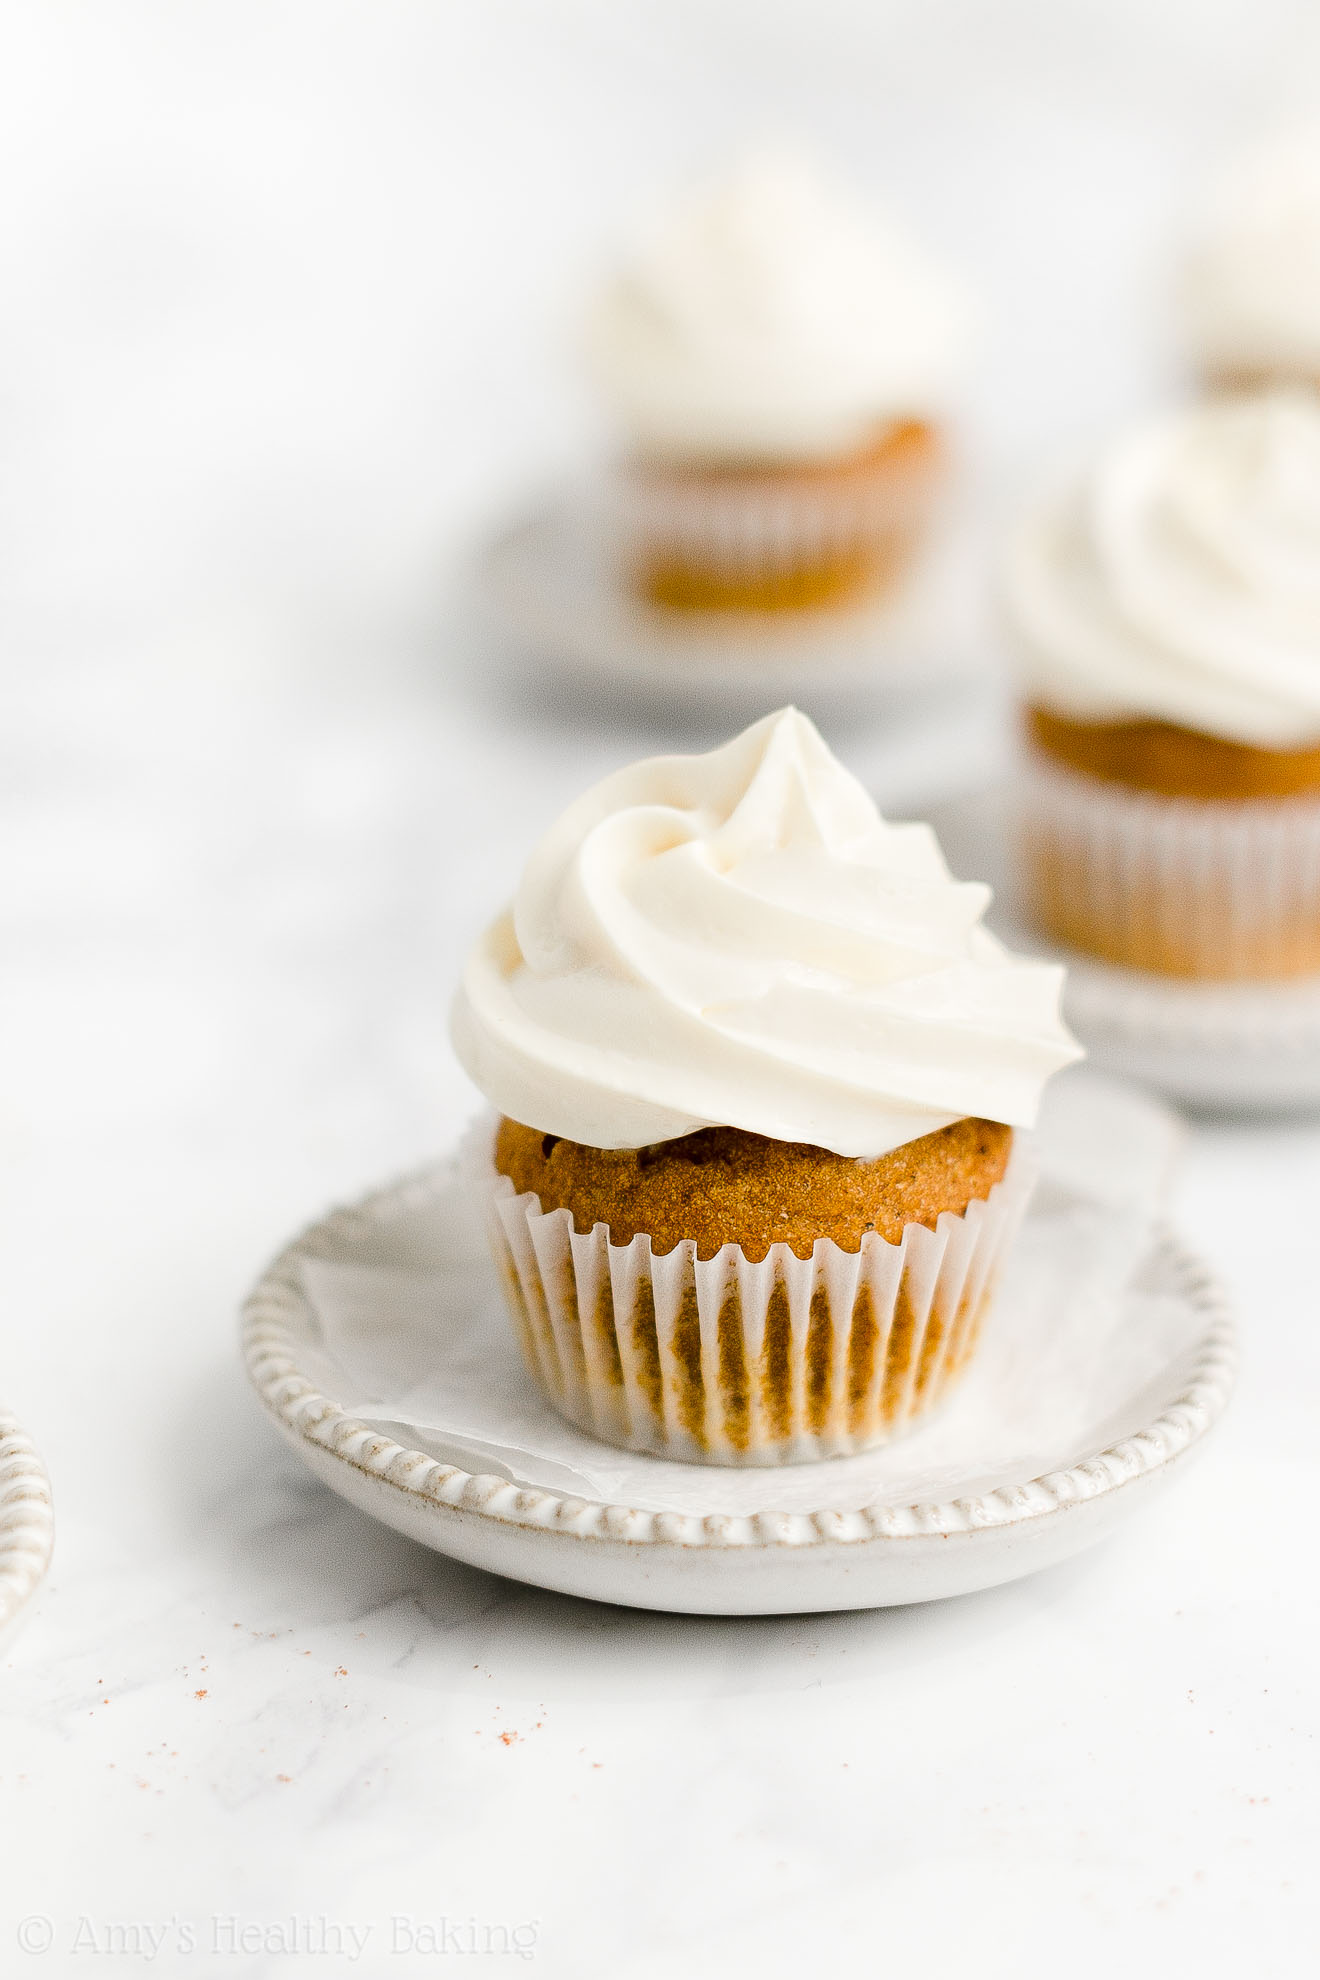 Best Healthy Gluten Free Mini Pumpkin Cupcakes + Cream Cheese Frosting